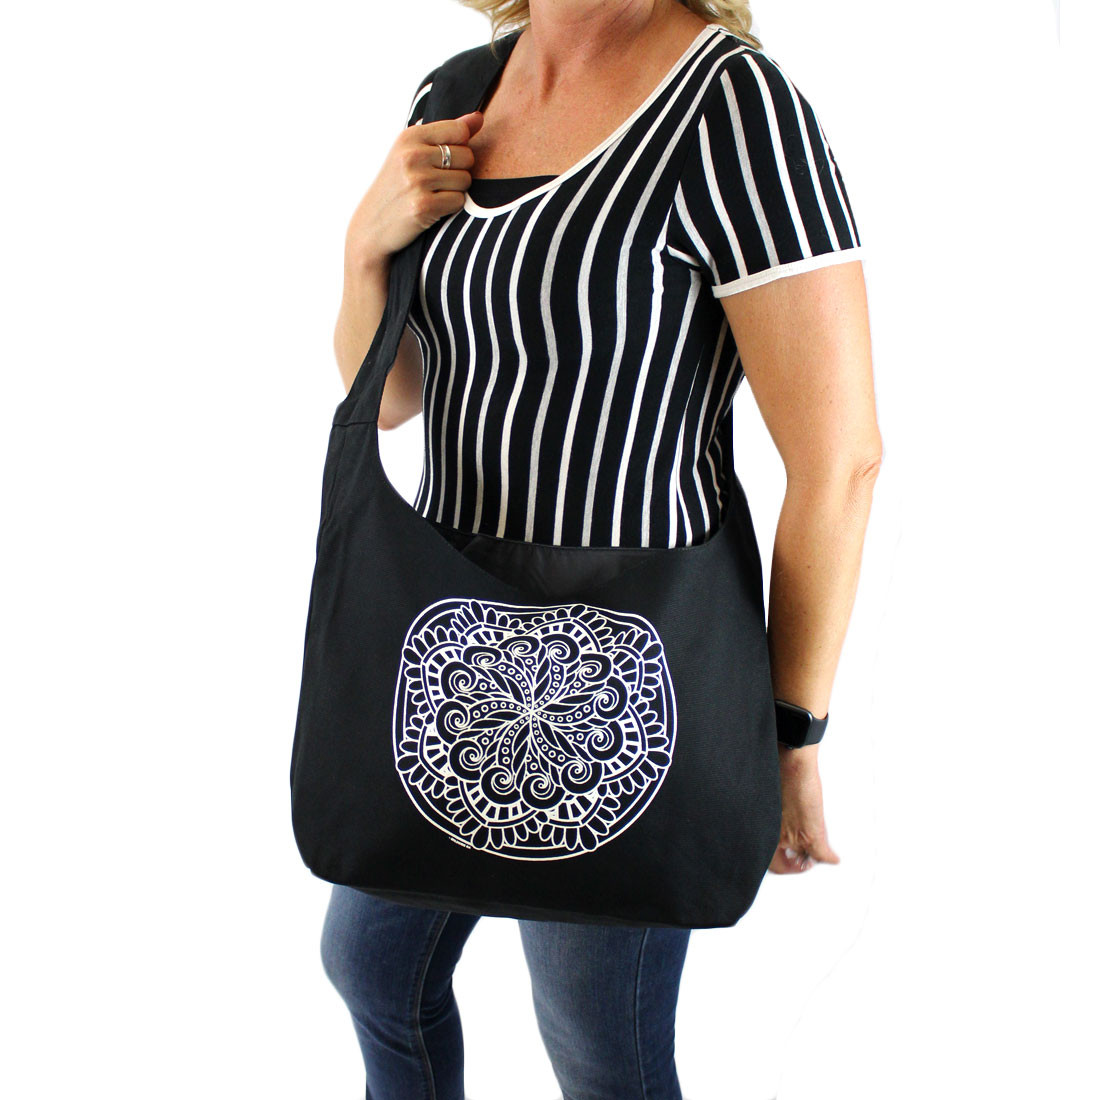 Black canvas sling bag with white Mandala on front of bag shown on front side of person.